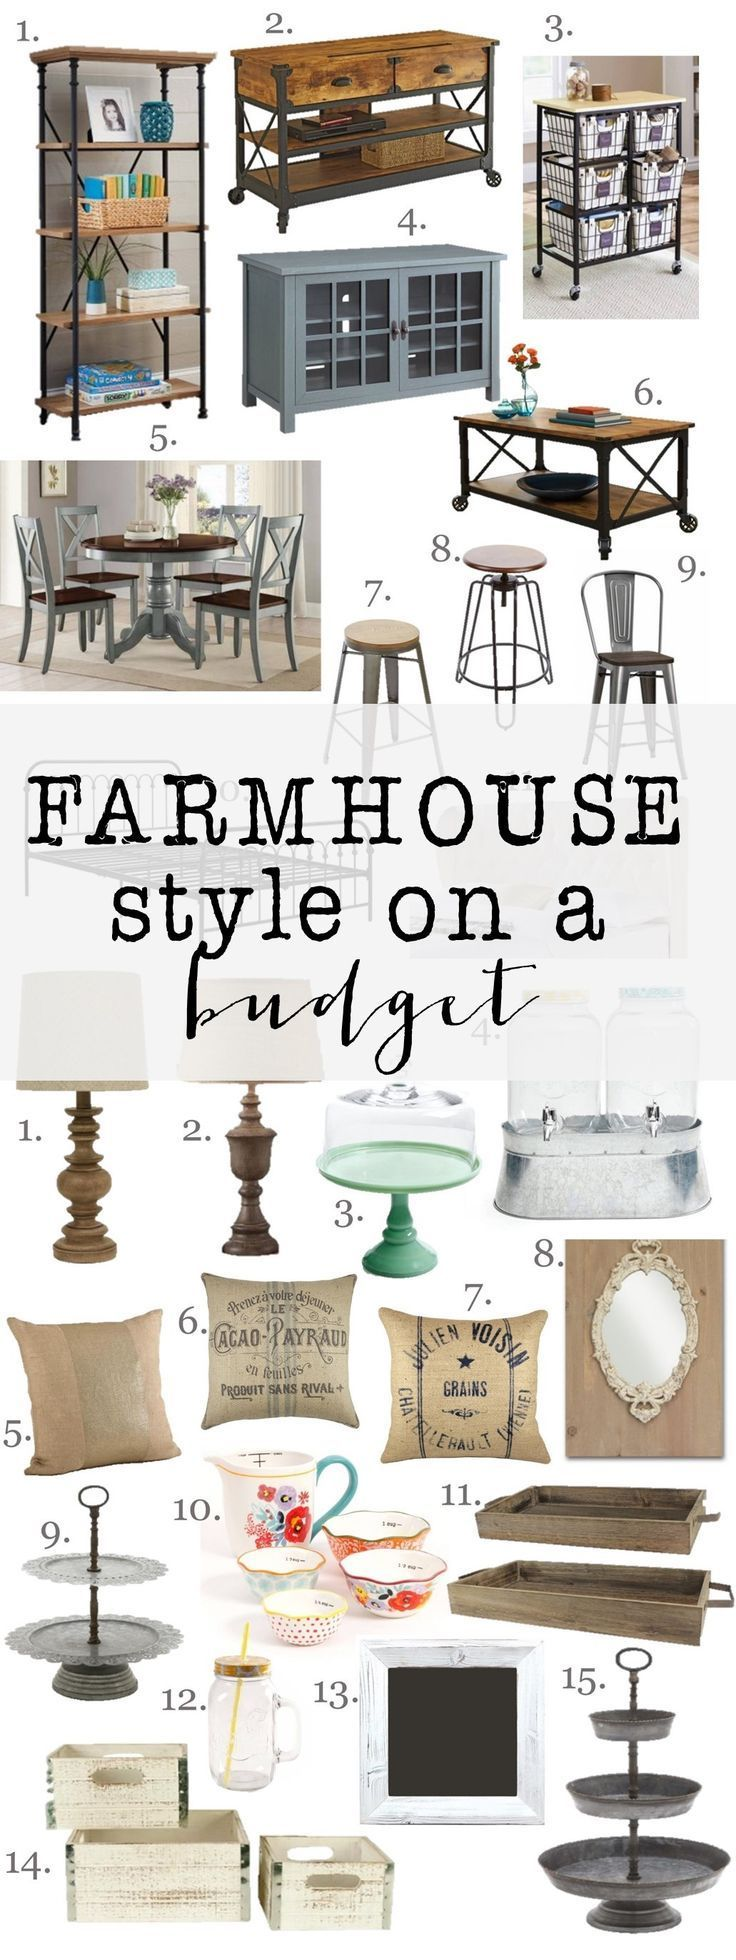 Farmhouse Style on a budget: Amazing farmhouse furniture and decor at incredible prices. Decorating doesnt have to be expensive.